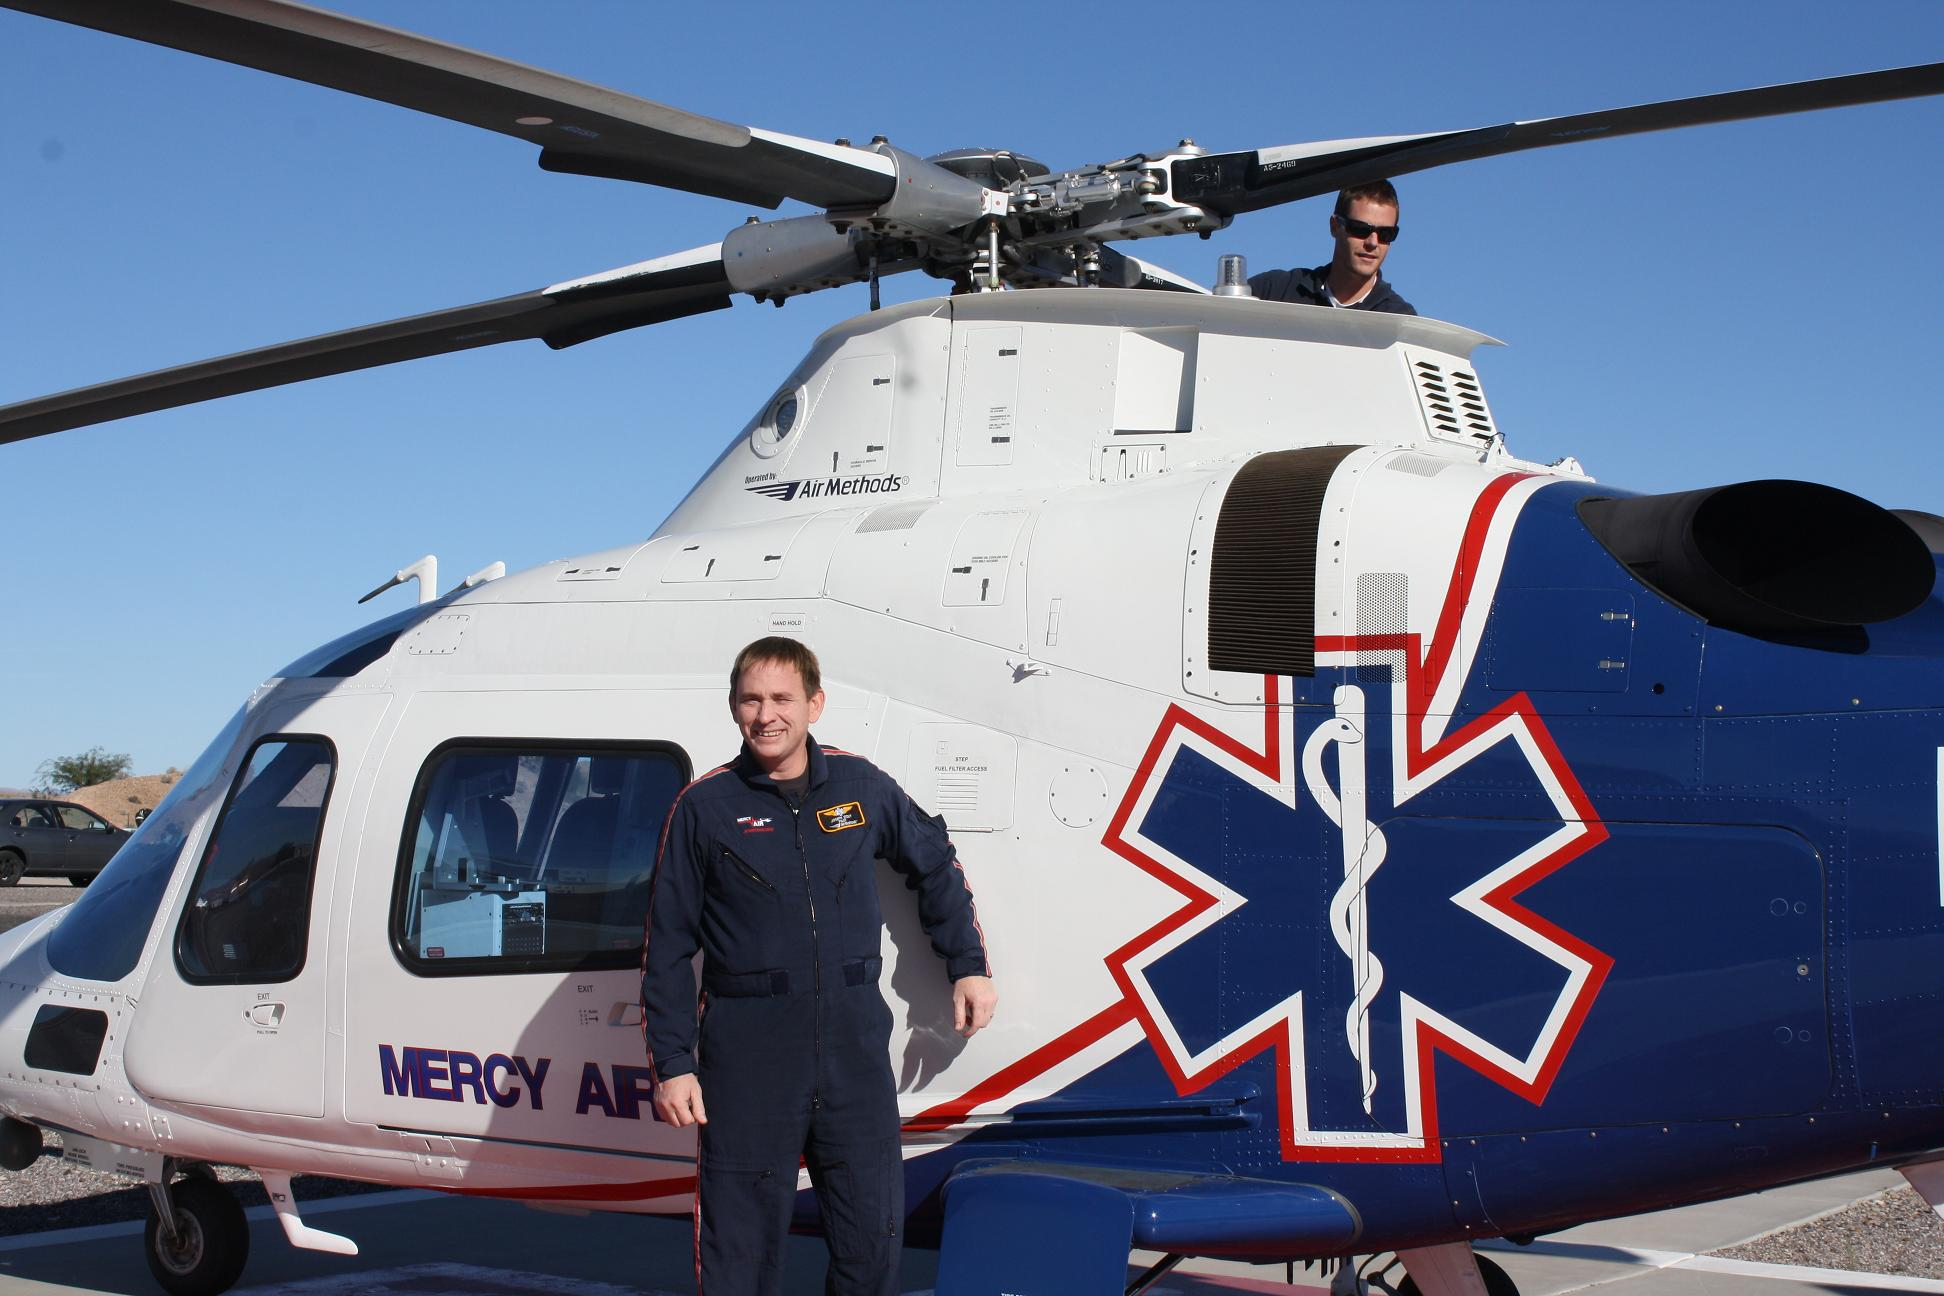 Mercy Air Mesquite branch receives new helicopter